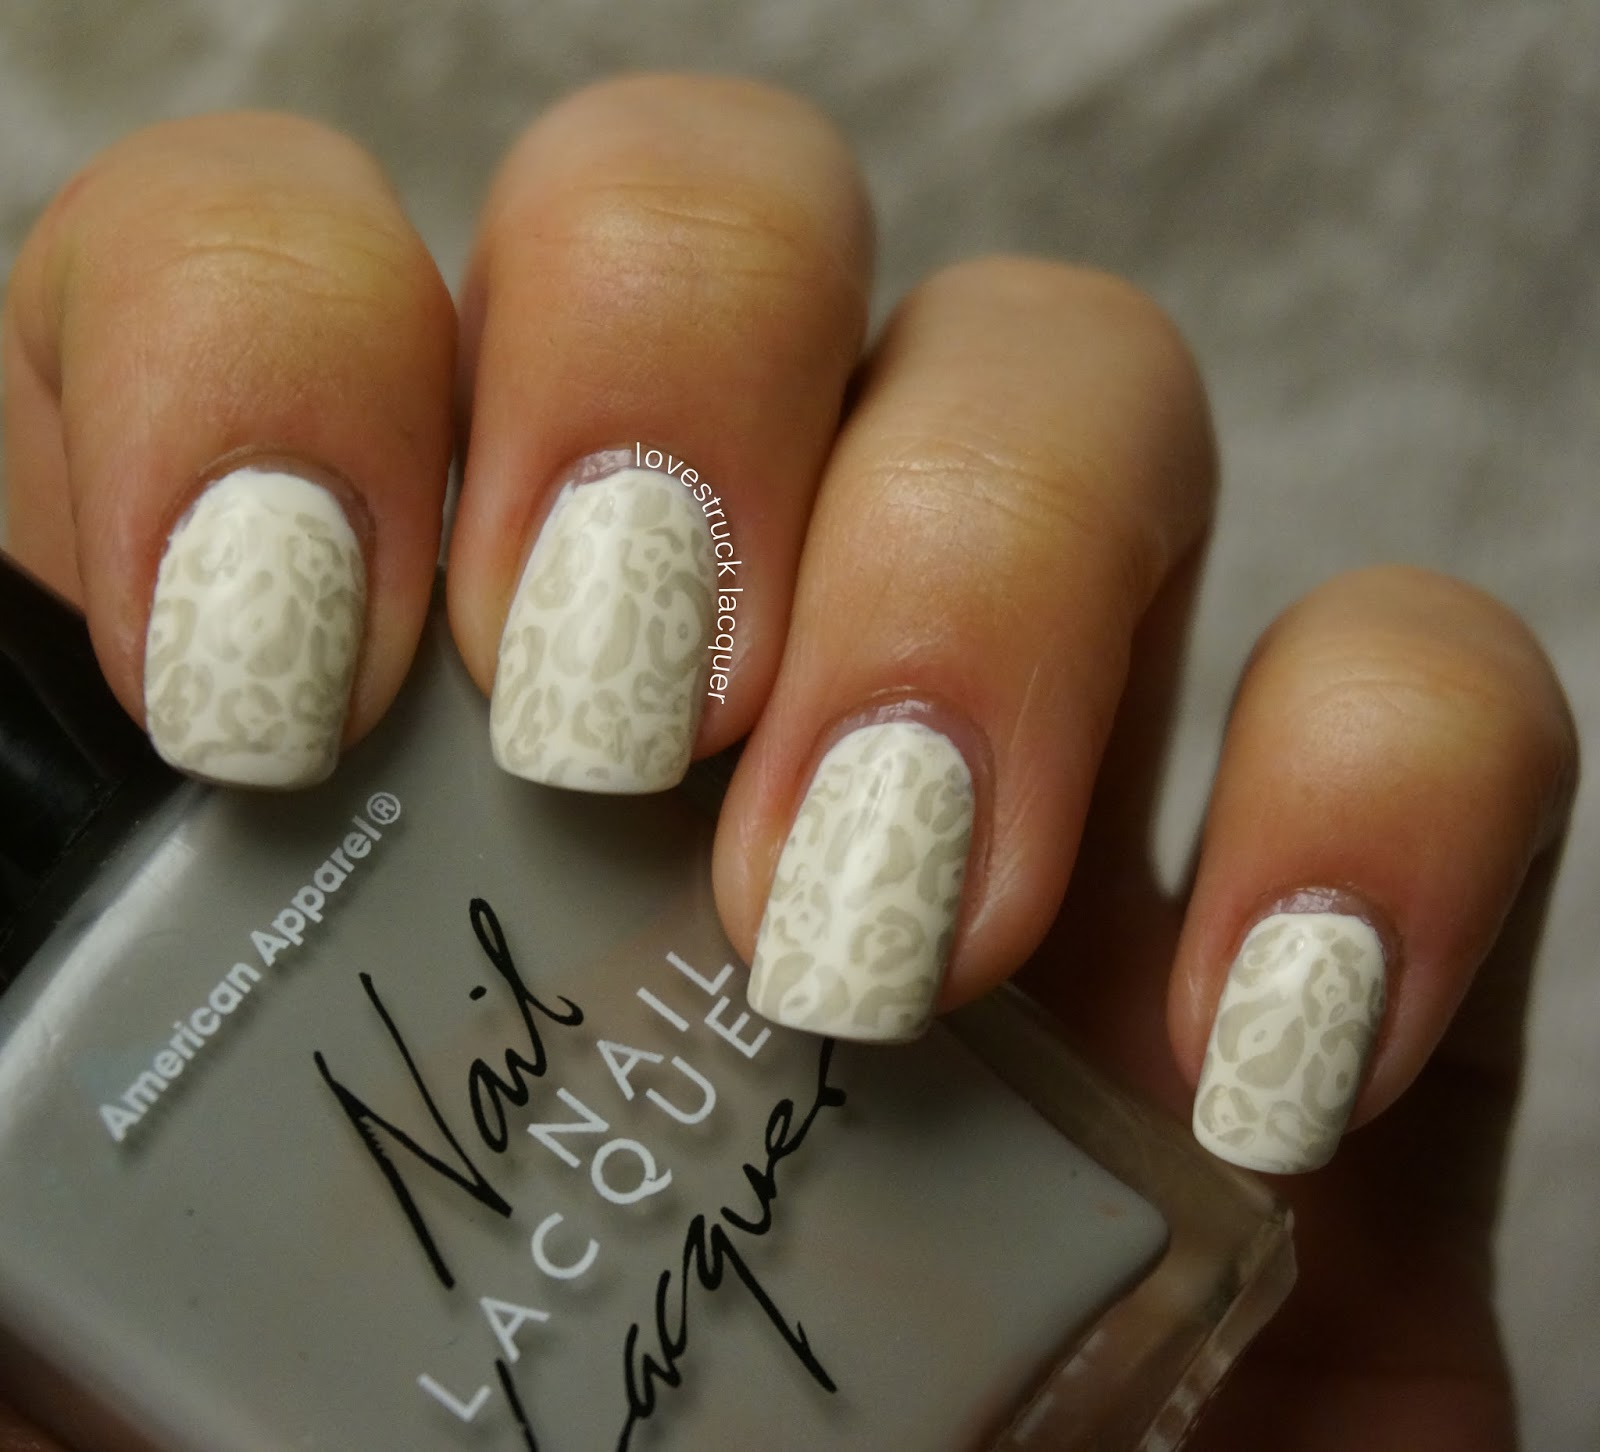 Lovestruck Lacquer: Busy Girl Nails Winter Nail Art Challenge ...